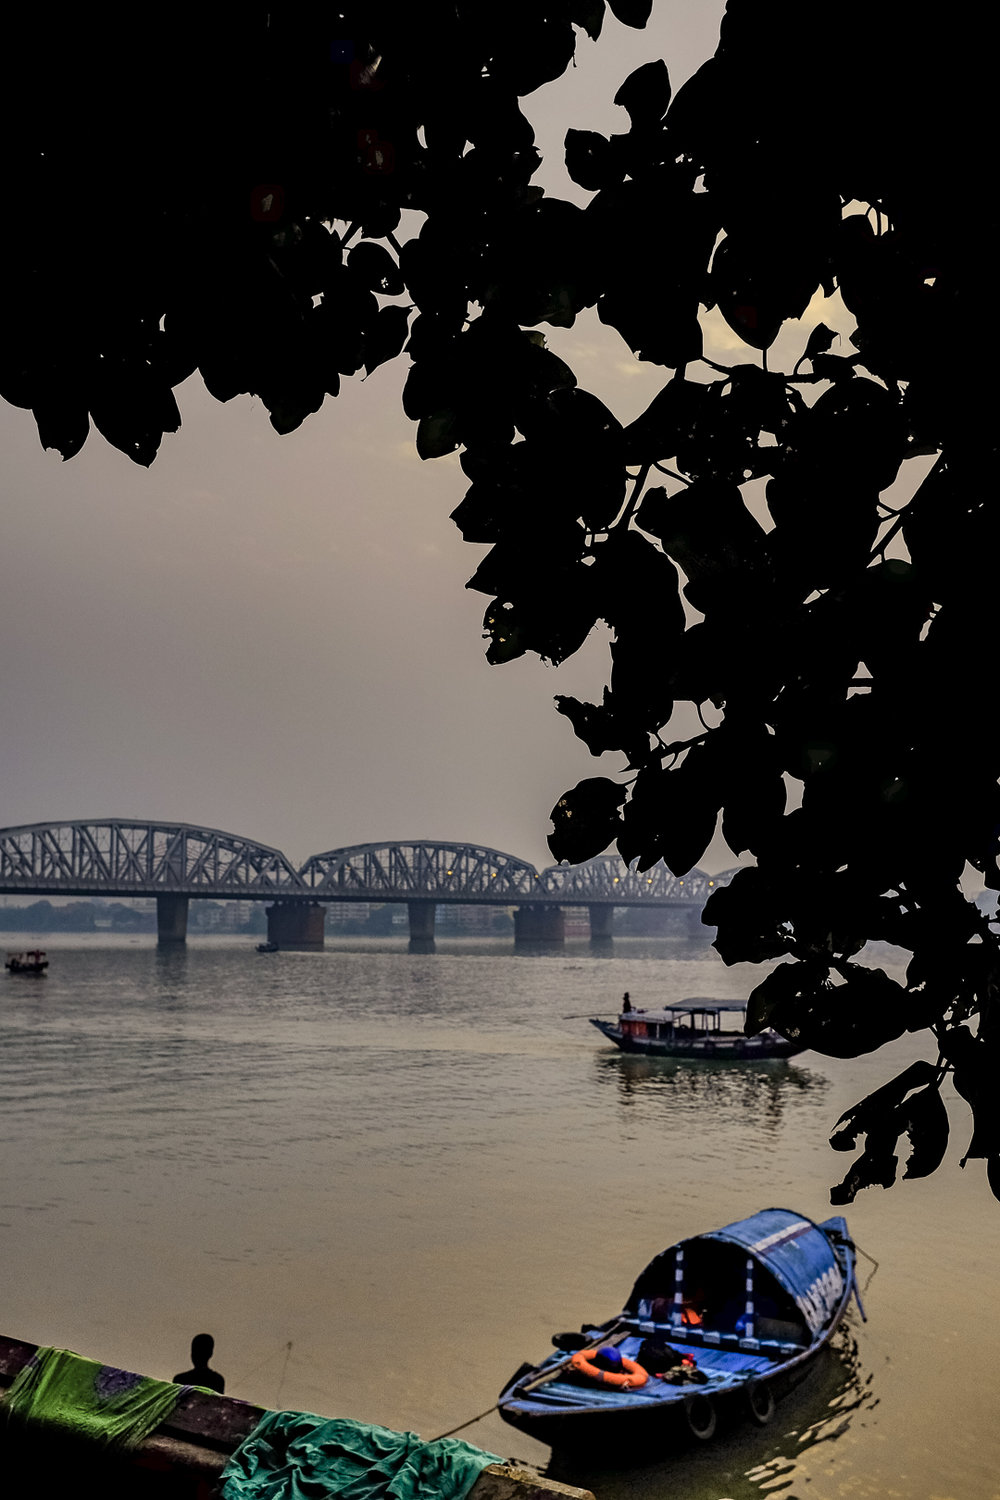 The thick, treacly waters of Hooghly, the last gasp of the Ganges before it runs into the Bay of Bengal.